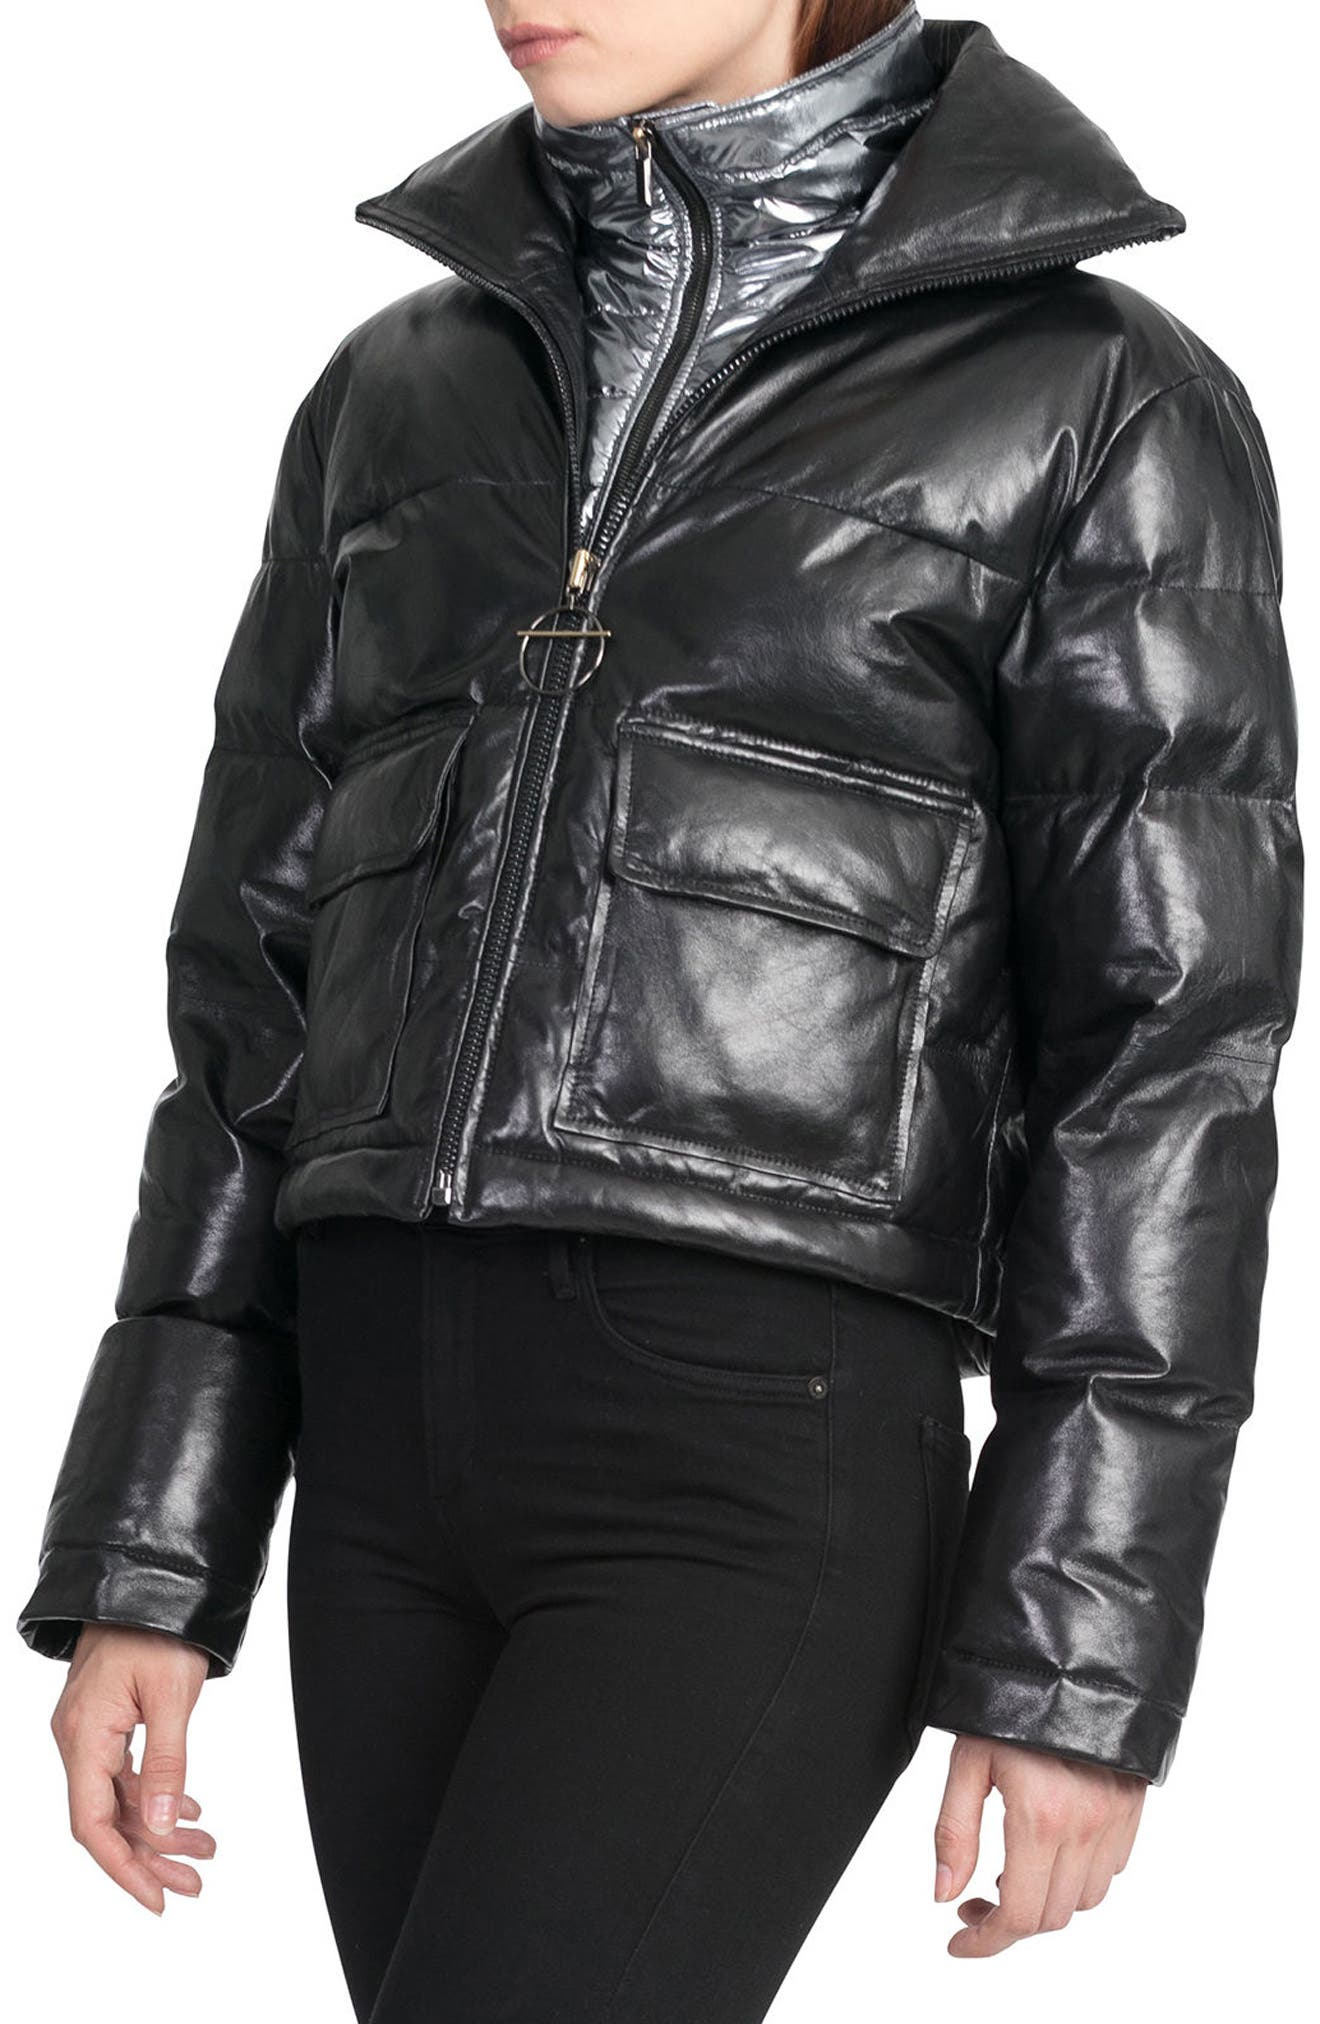 BAGATELLE.CITY The Puffer Leather Jacket with Removable Bib Lining,                             Alternate thumbnail 3, color,                             001